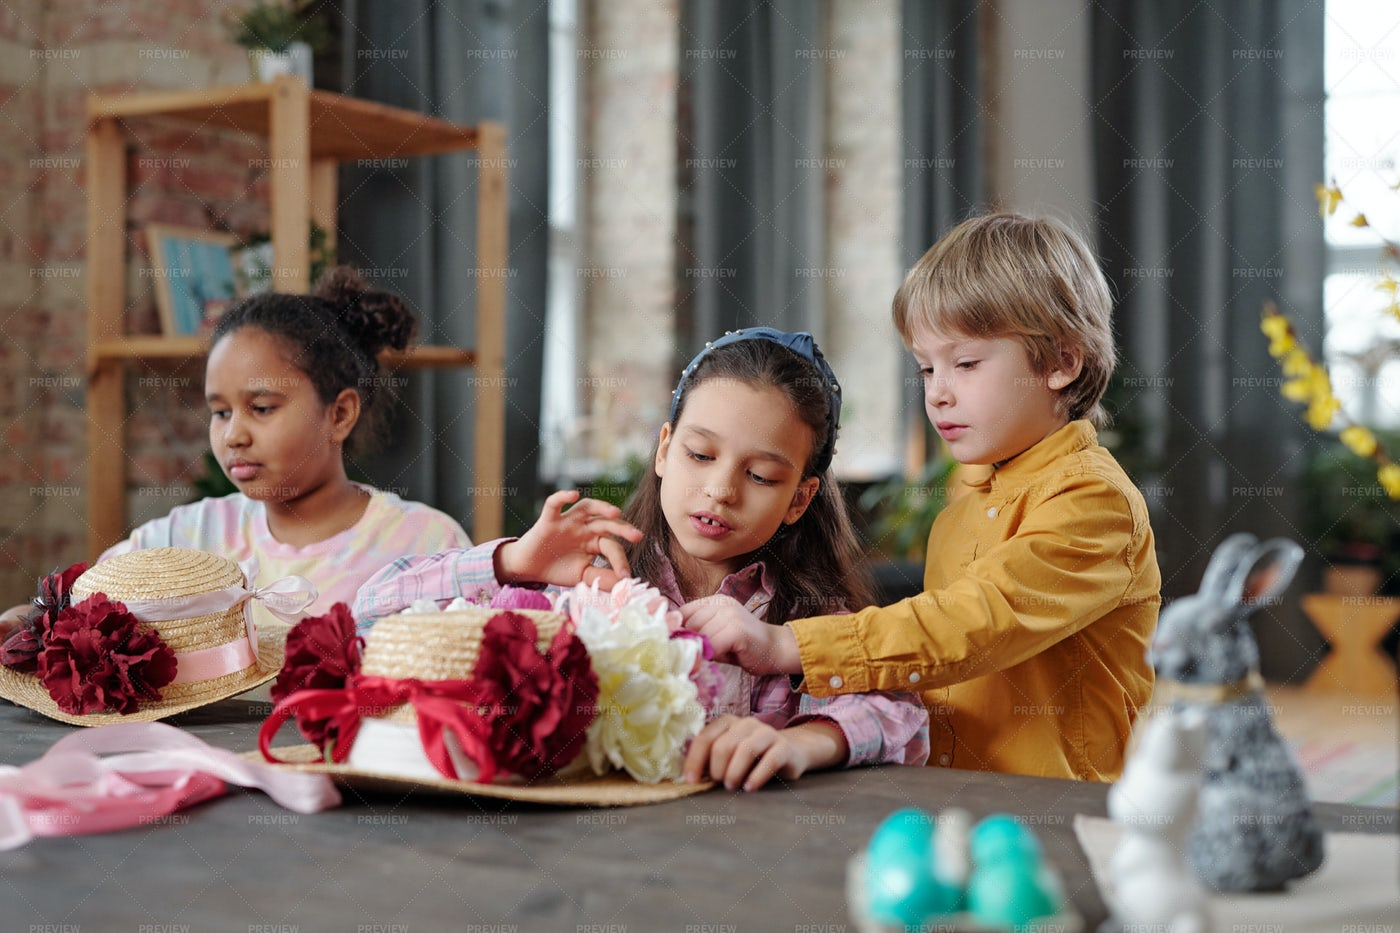 Children Decorating Hats With Flowers: Stock Photos